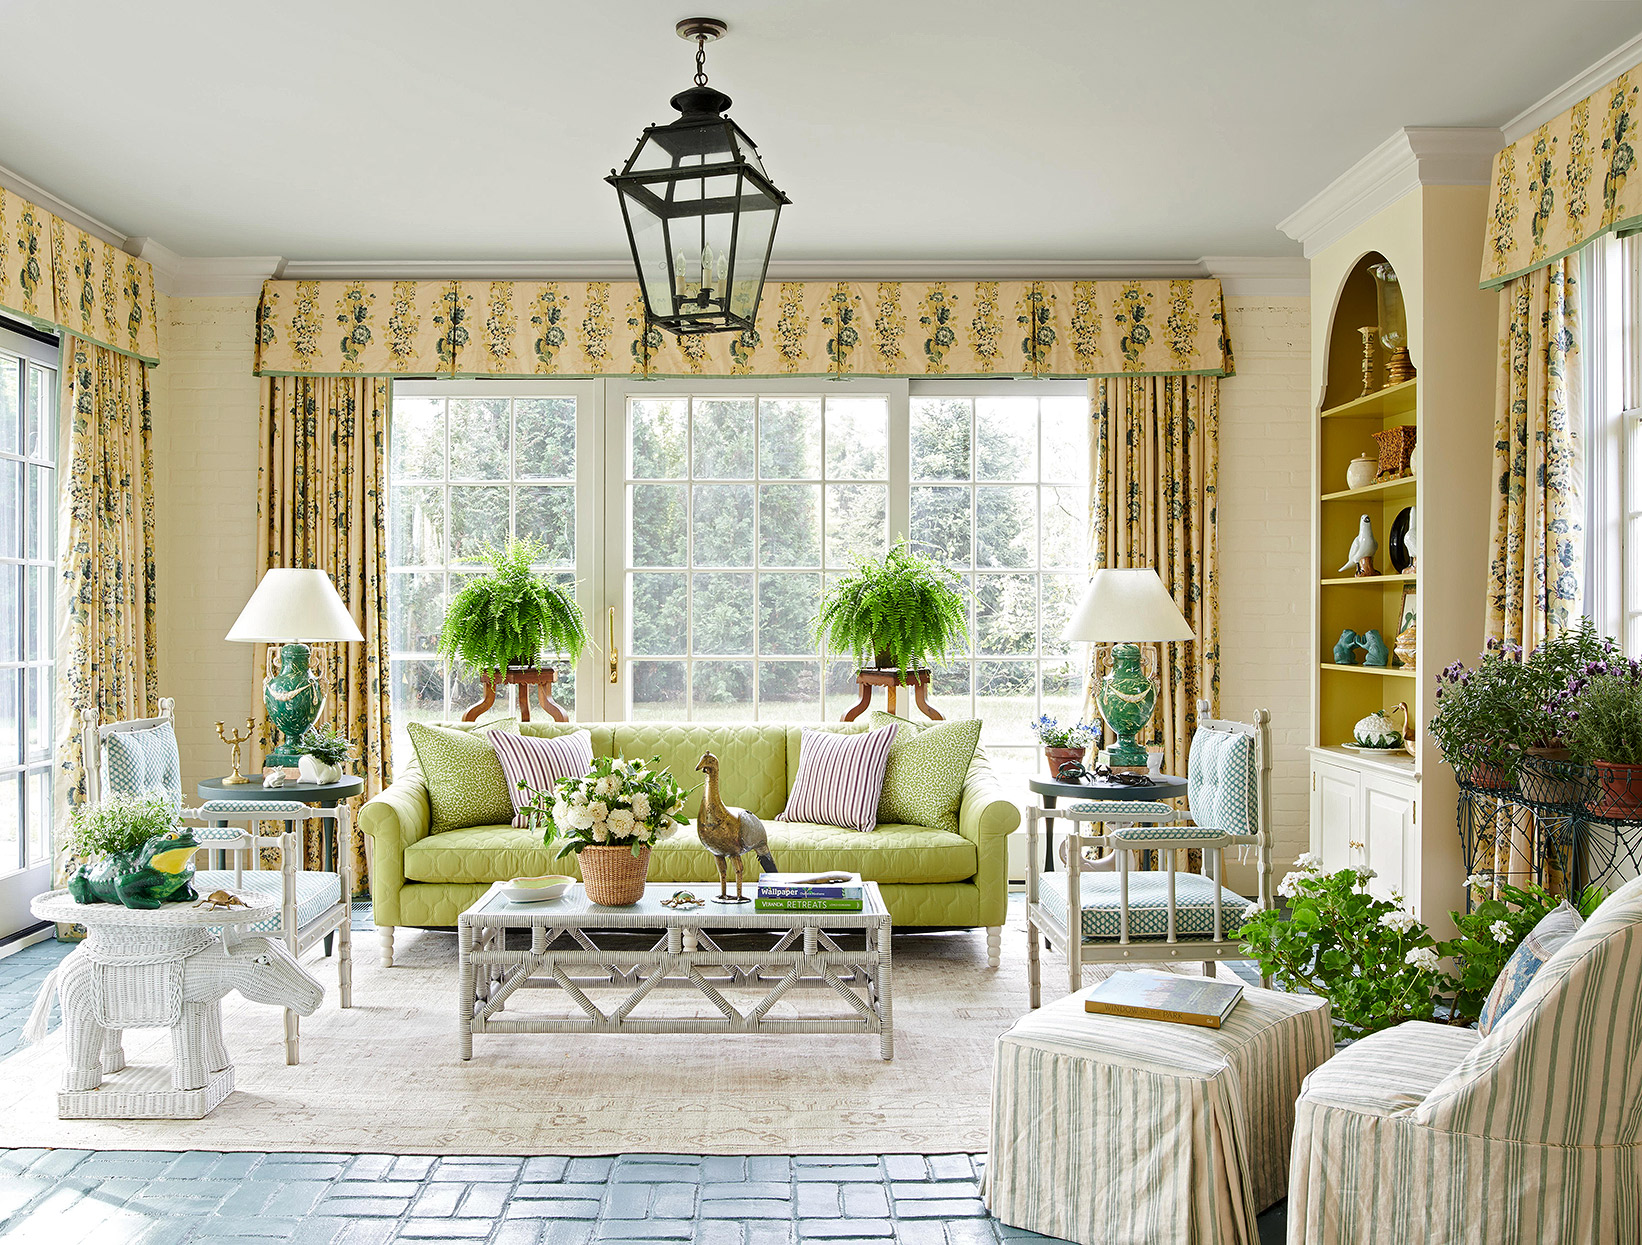 yellow sunroom with bright green sofa and plants